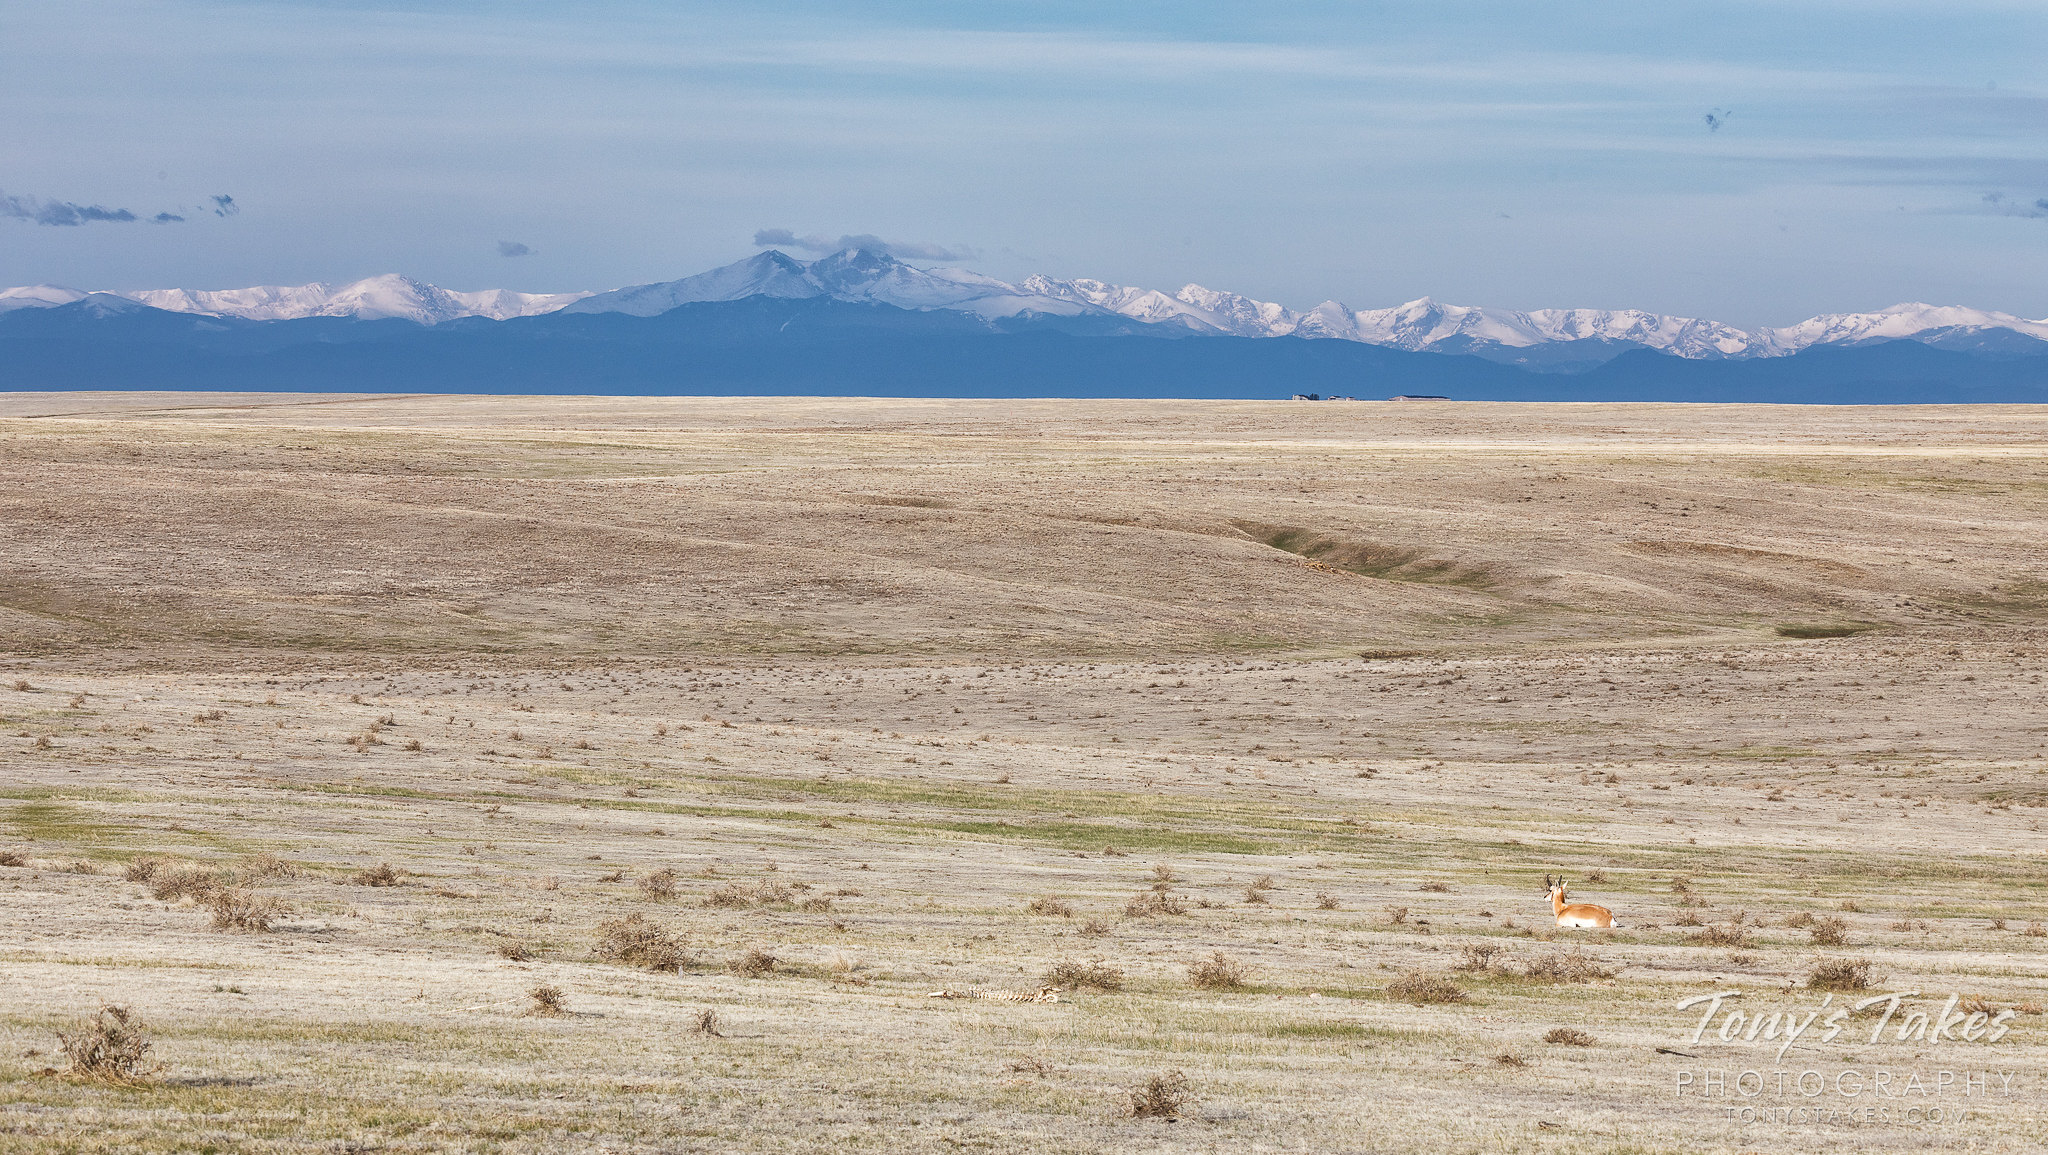 A pronghorn buck lies on the plains while in the distance, the Rocky Mountains tower. (© Tony's Takes)